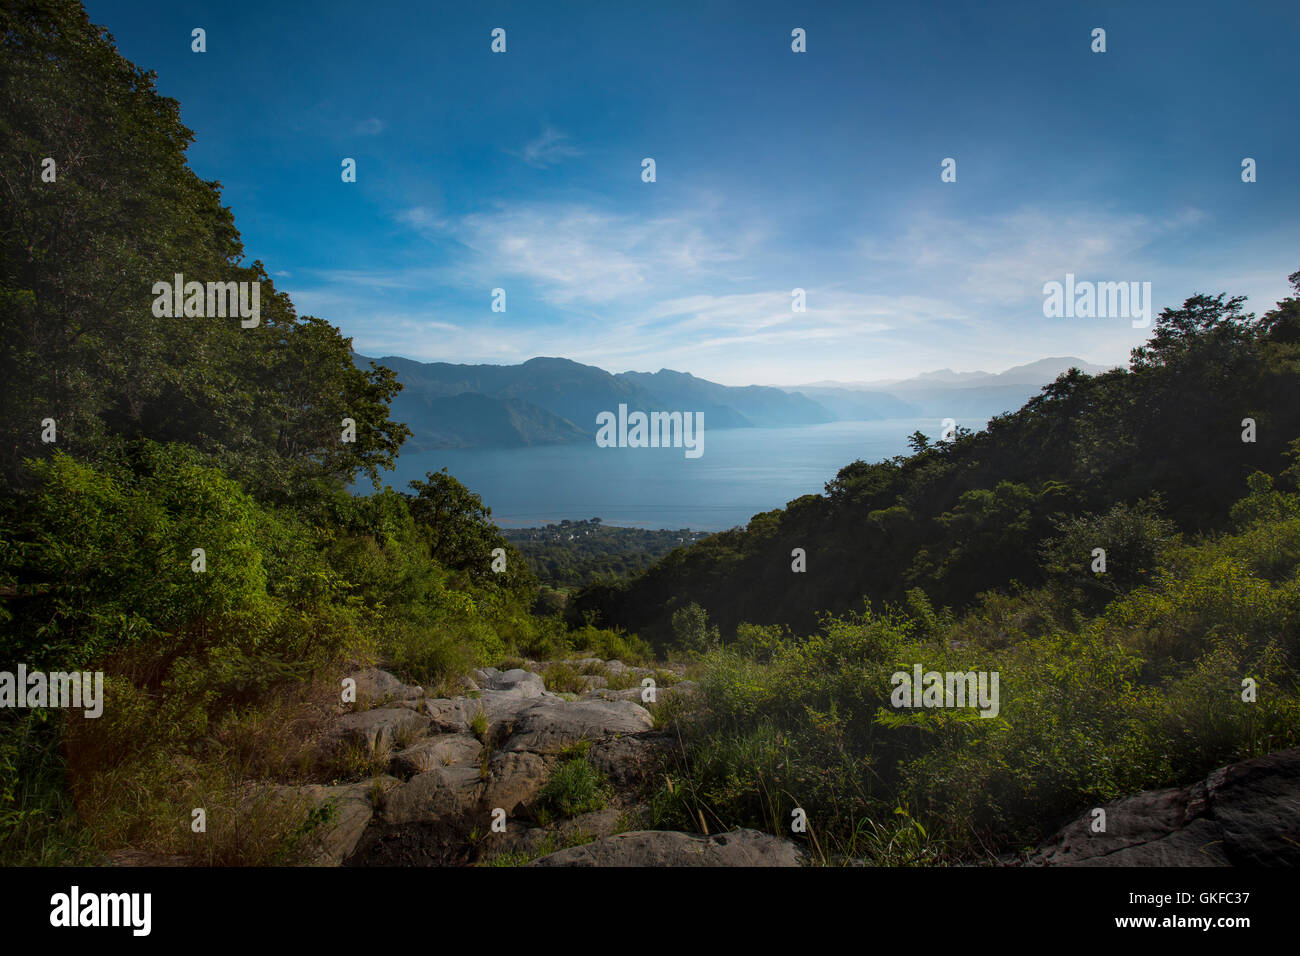 A view of Lake Atitlan and the surrounding mountains from the San Pedro Volcano in Guatemala - Stock Image